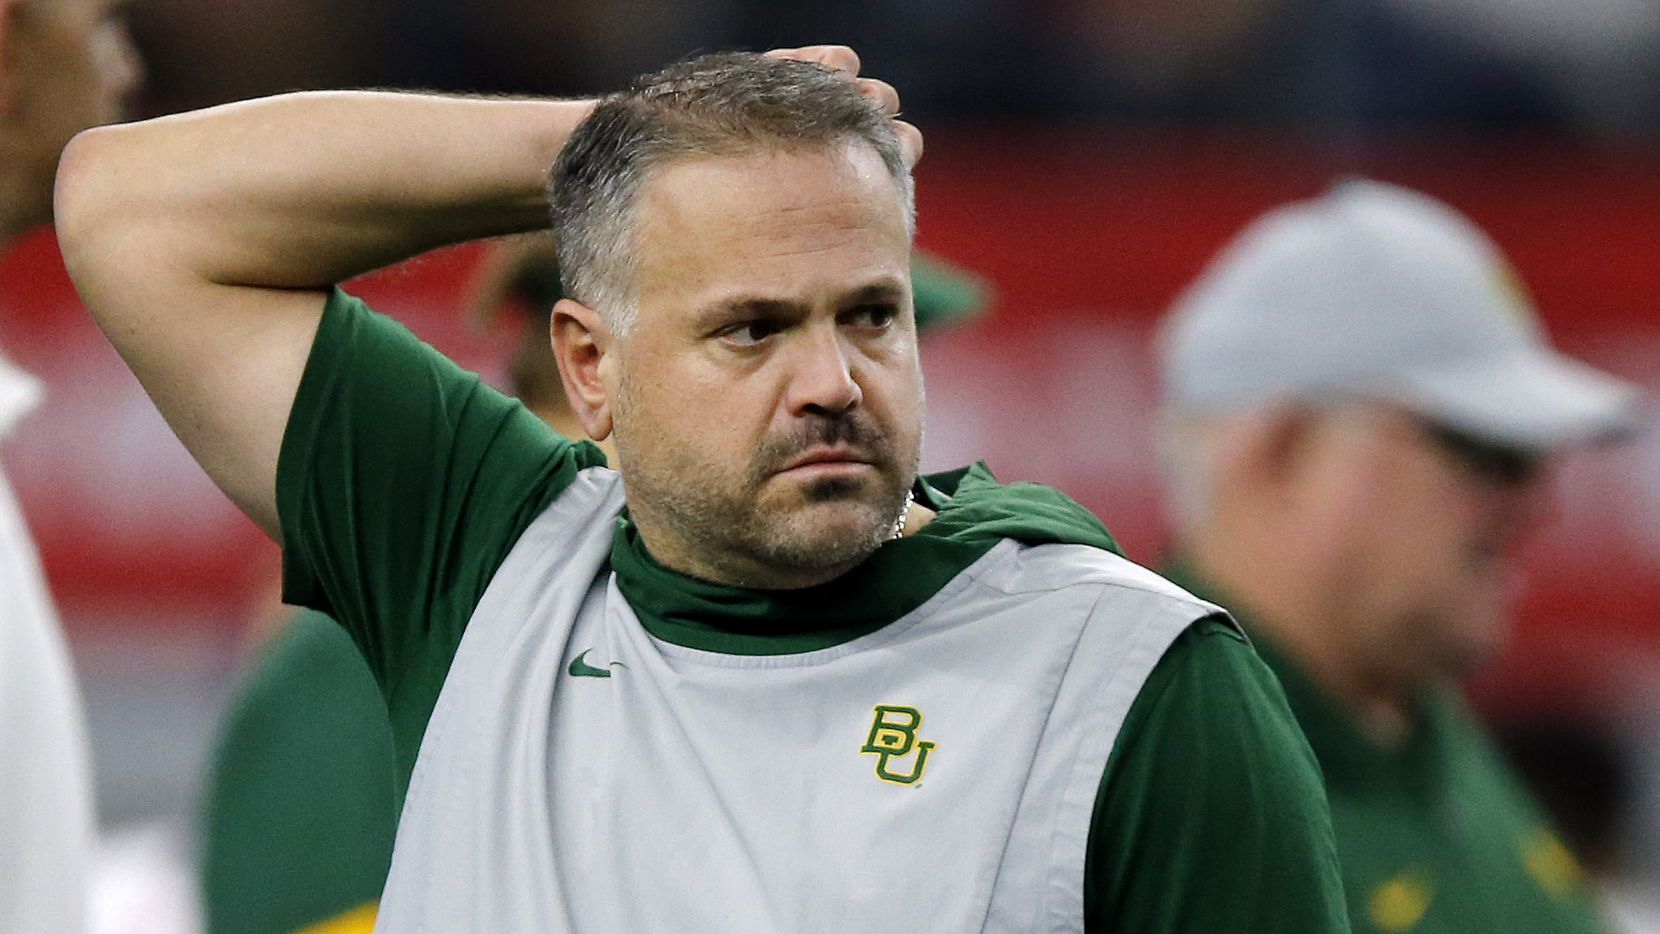 Baylor Bears head coach Matt Rhule watches his team during warm up before facing the Oklahoma Sooners in the Big 12 Championship at AT&T Stadium in Arlington, Saturday, December 7, 2019.